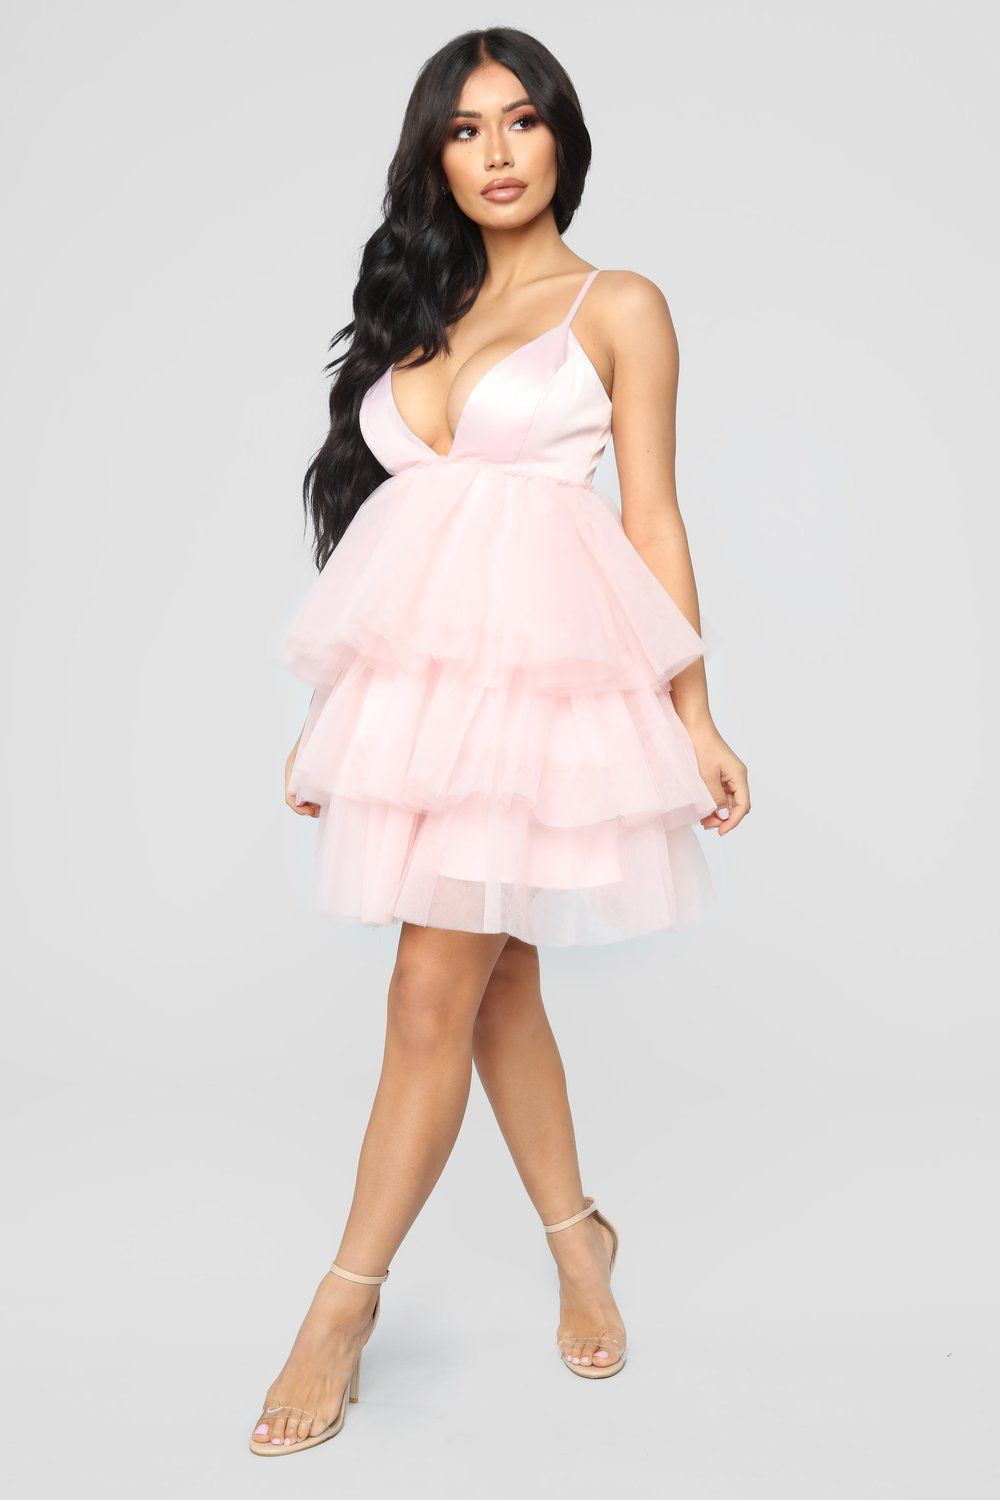 0f079565a59f She Bad Ruffle Dress - Blush | sissy | Fashion, Freakum dress ...